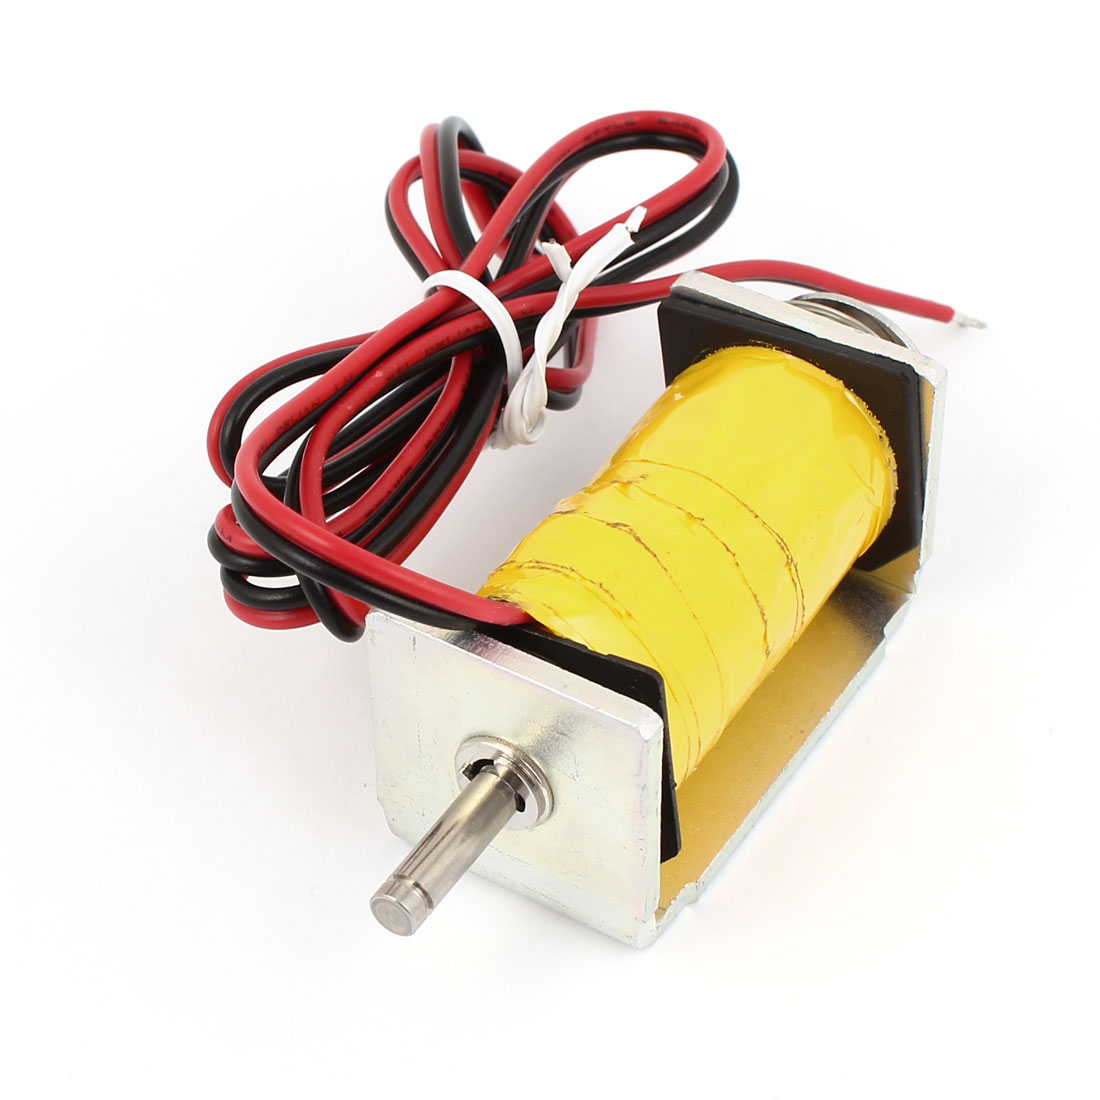 DC 12V 0.39A 4.72W Pull Type 4.85mm 300gf Electromagnet Solenoid